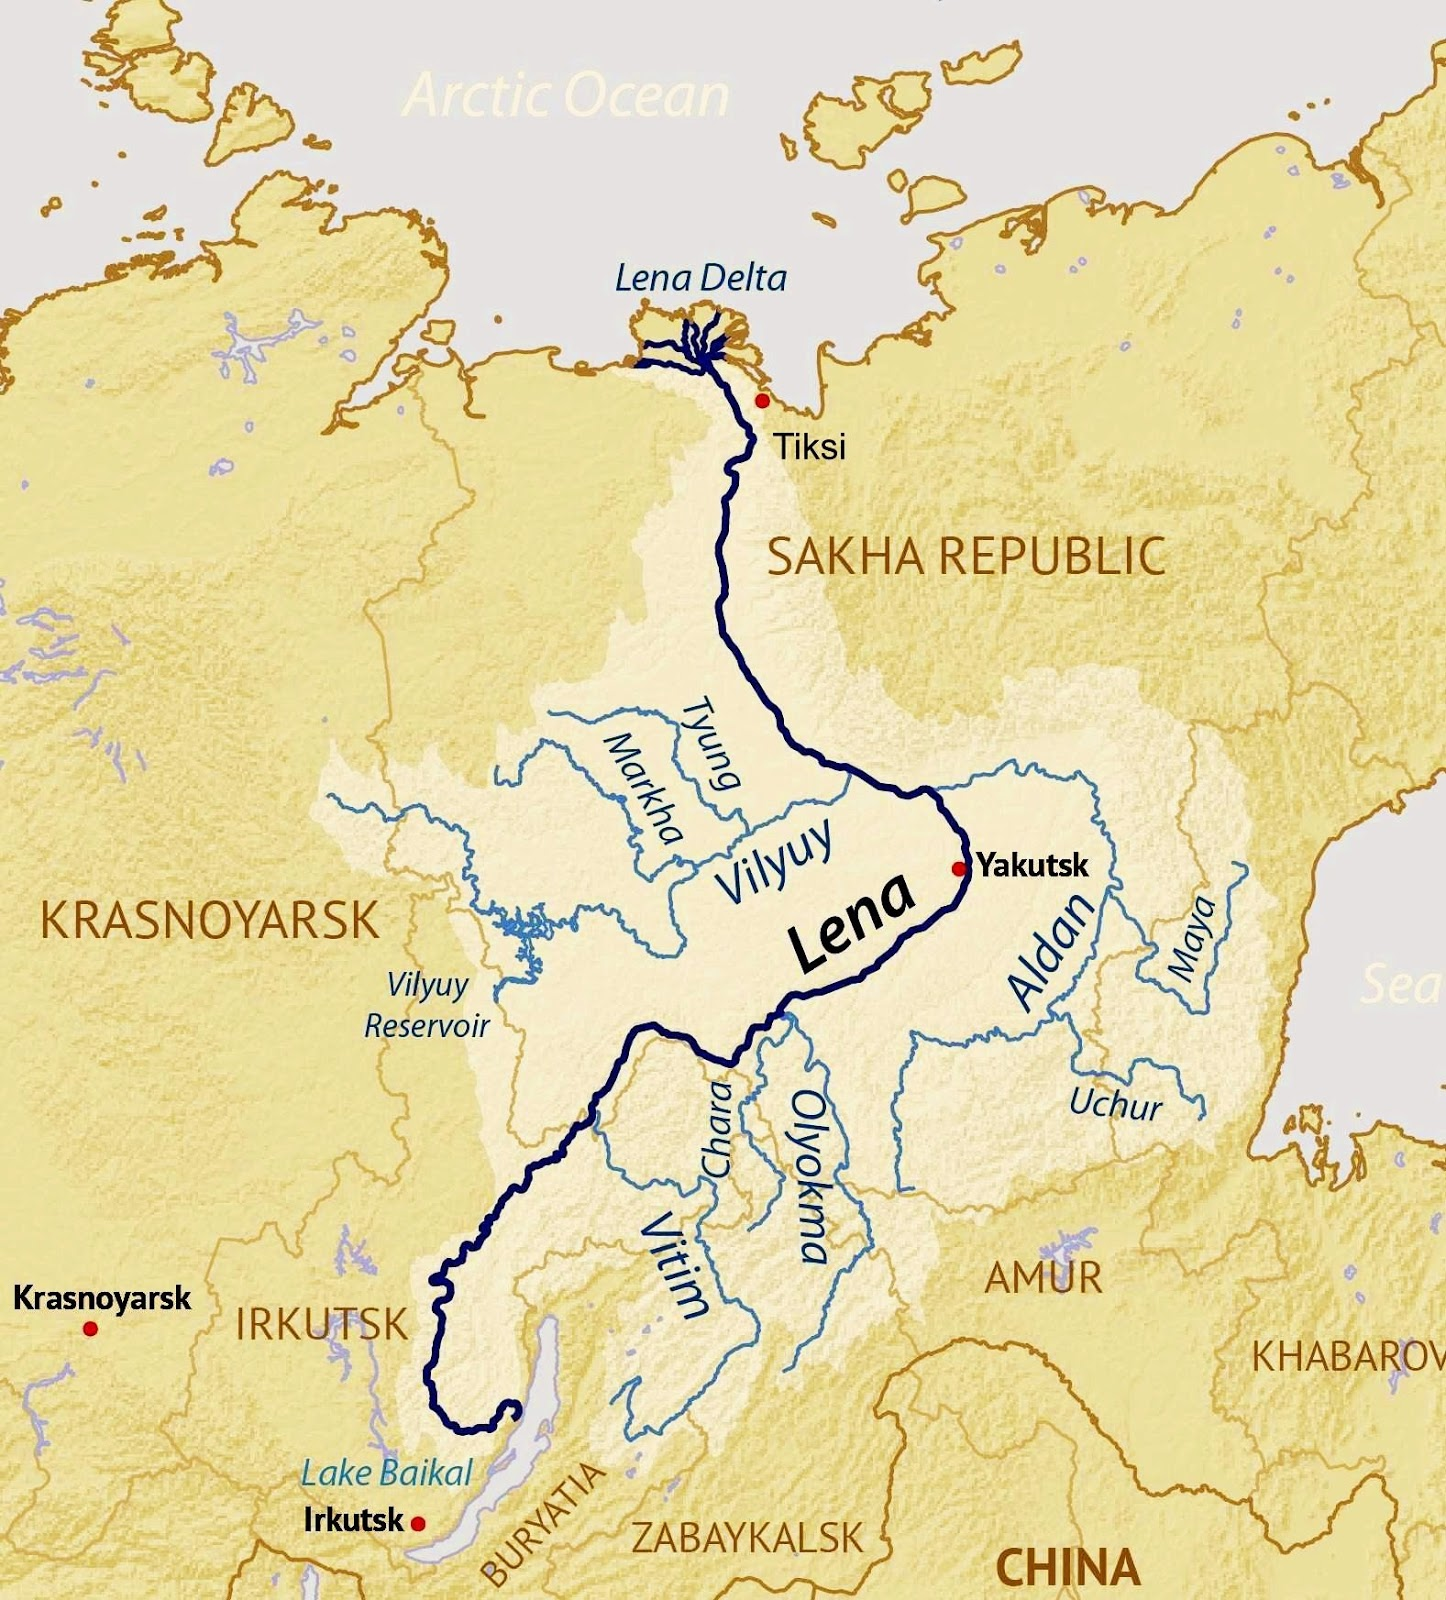 Kolyma River Map World on major us river map, caucasus river map, thames river map, nile river map, pakistan river map, irtysh river map, great smoky mountains national park river map, mn river map, eastern europe river map, northern california river map, south carolina river map, po river map, savannah georgia river map, north america river map, usa river map, elbe river map, the seine river map, the missouri river map, american river map, salween river map,